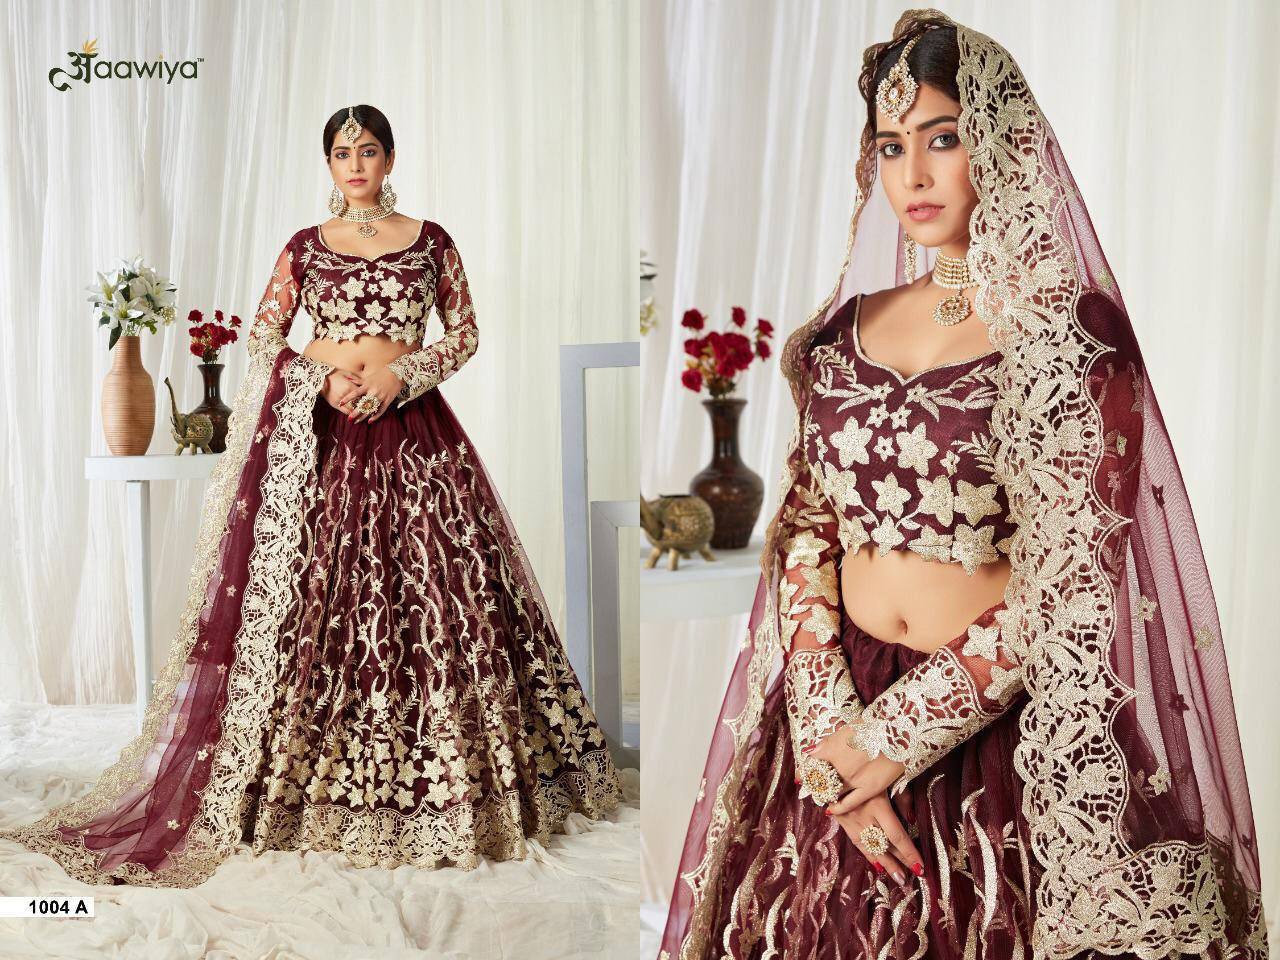 agnilekha-1004-colors-design-1004-a-2